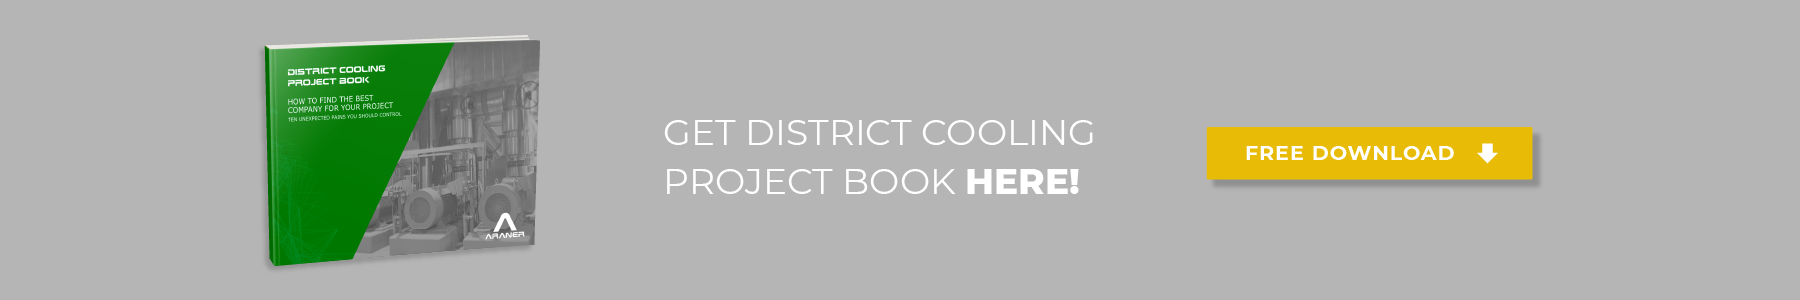 ARANER is the best consultant for a District Cooling project